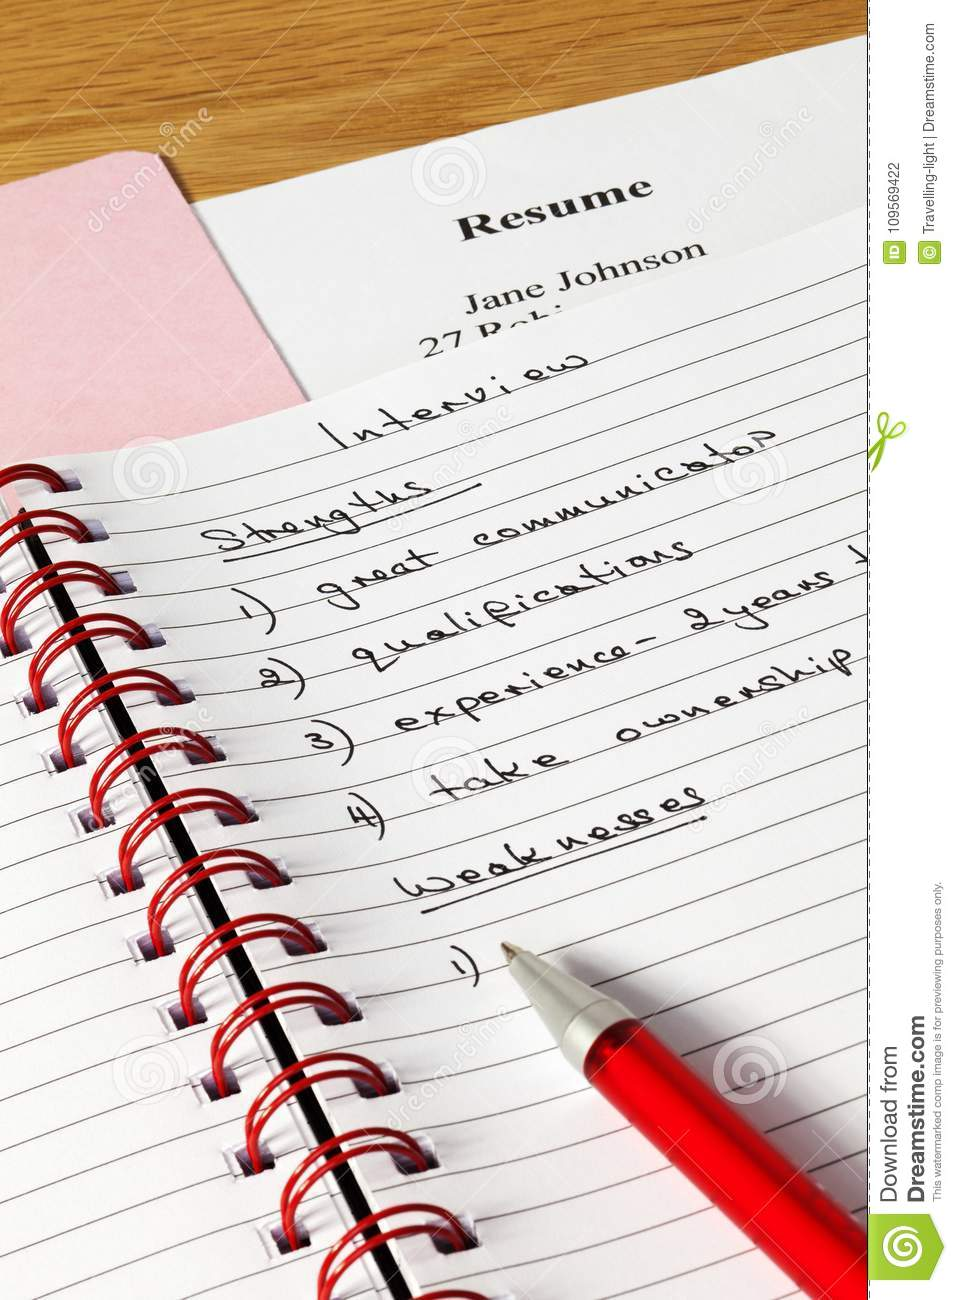 interview notes concept stock photo image of notes 109569422